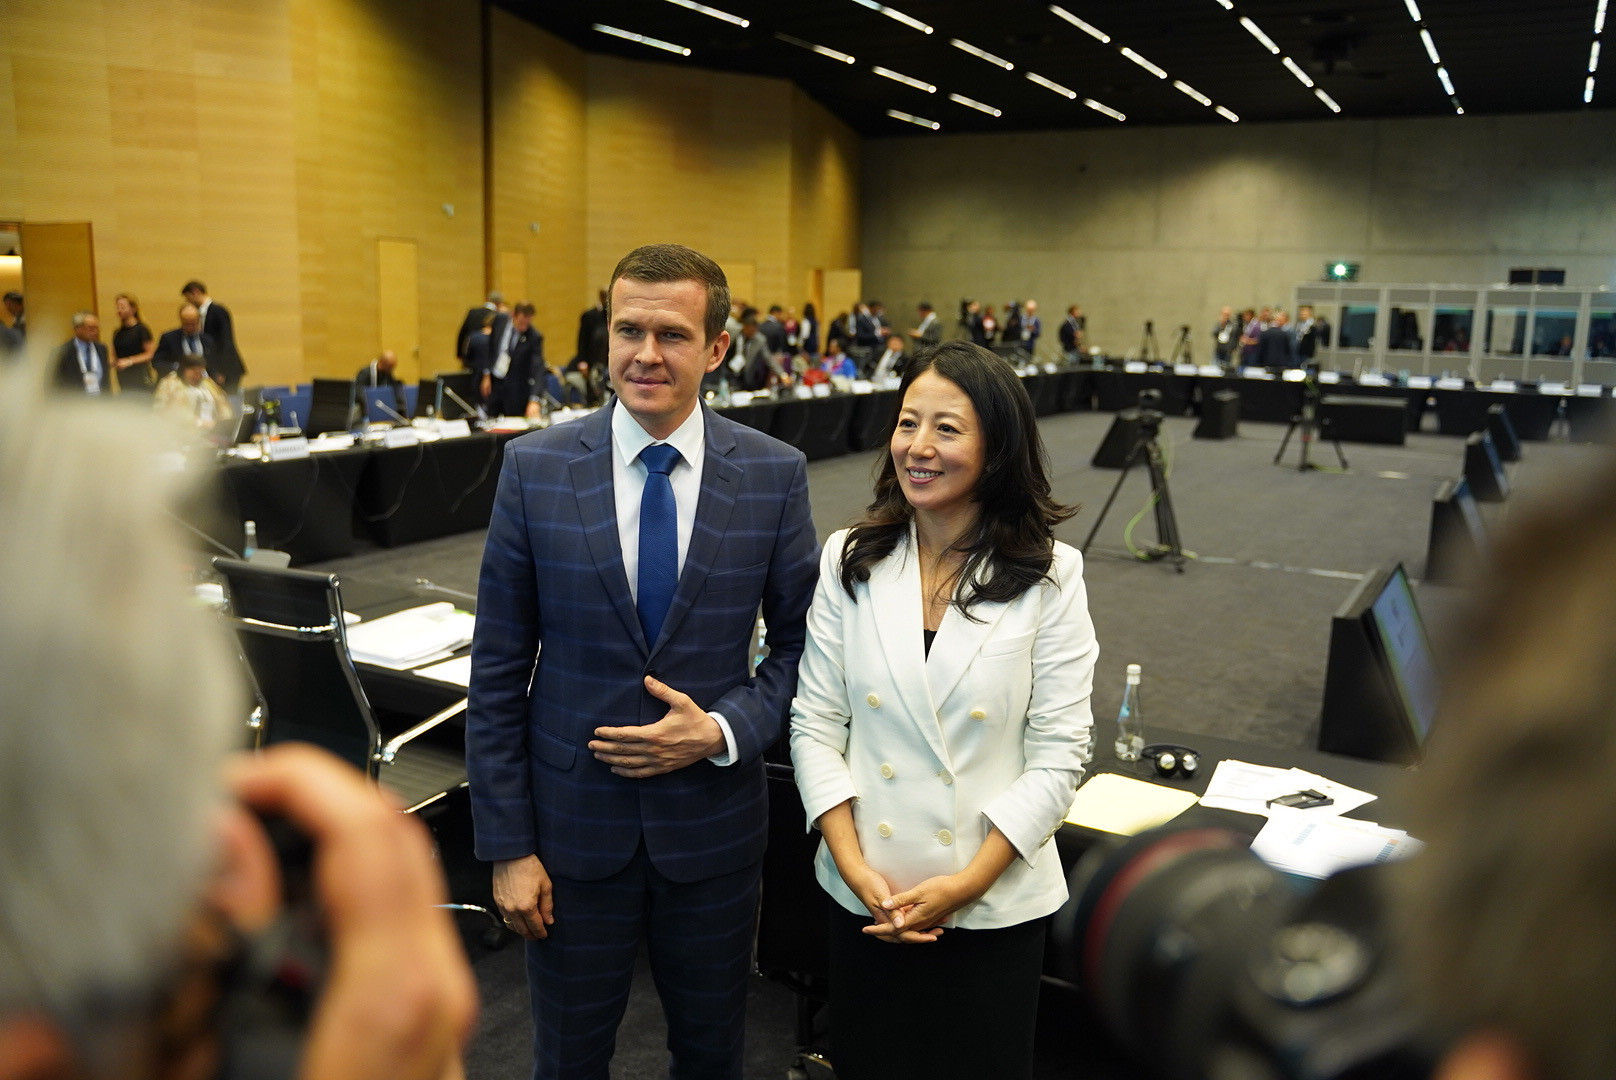 Poland's Witold Bańka and China's Yang Yang were today officially confirmed as the next leaders of WADA ©WADA